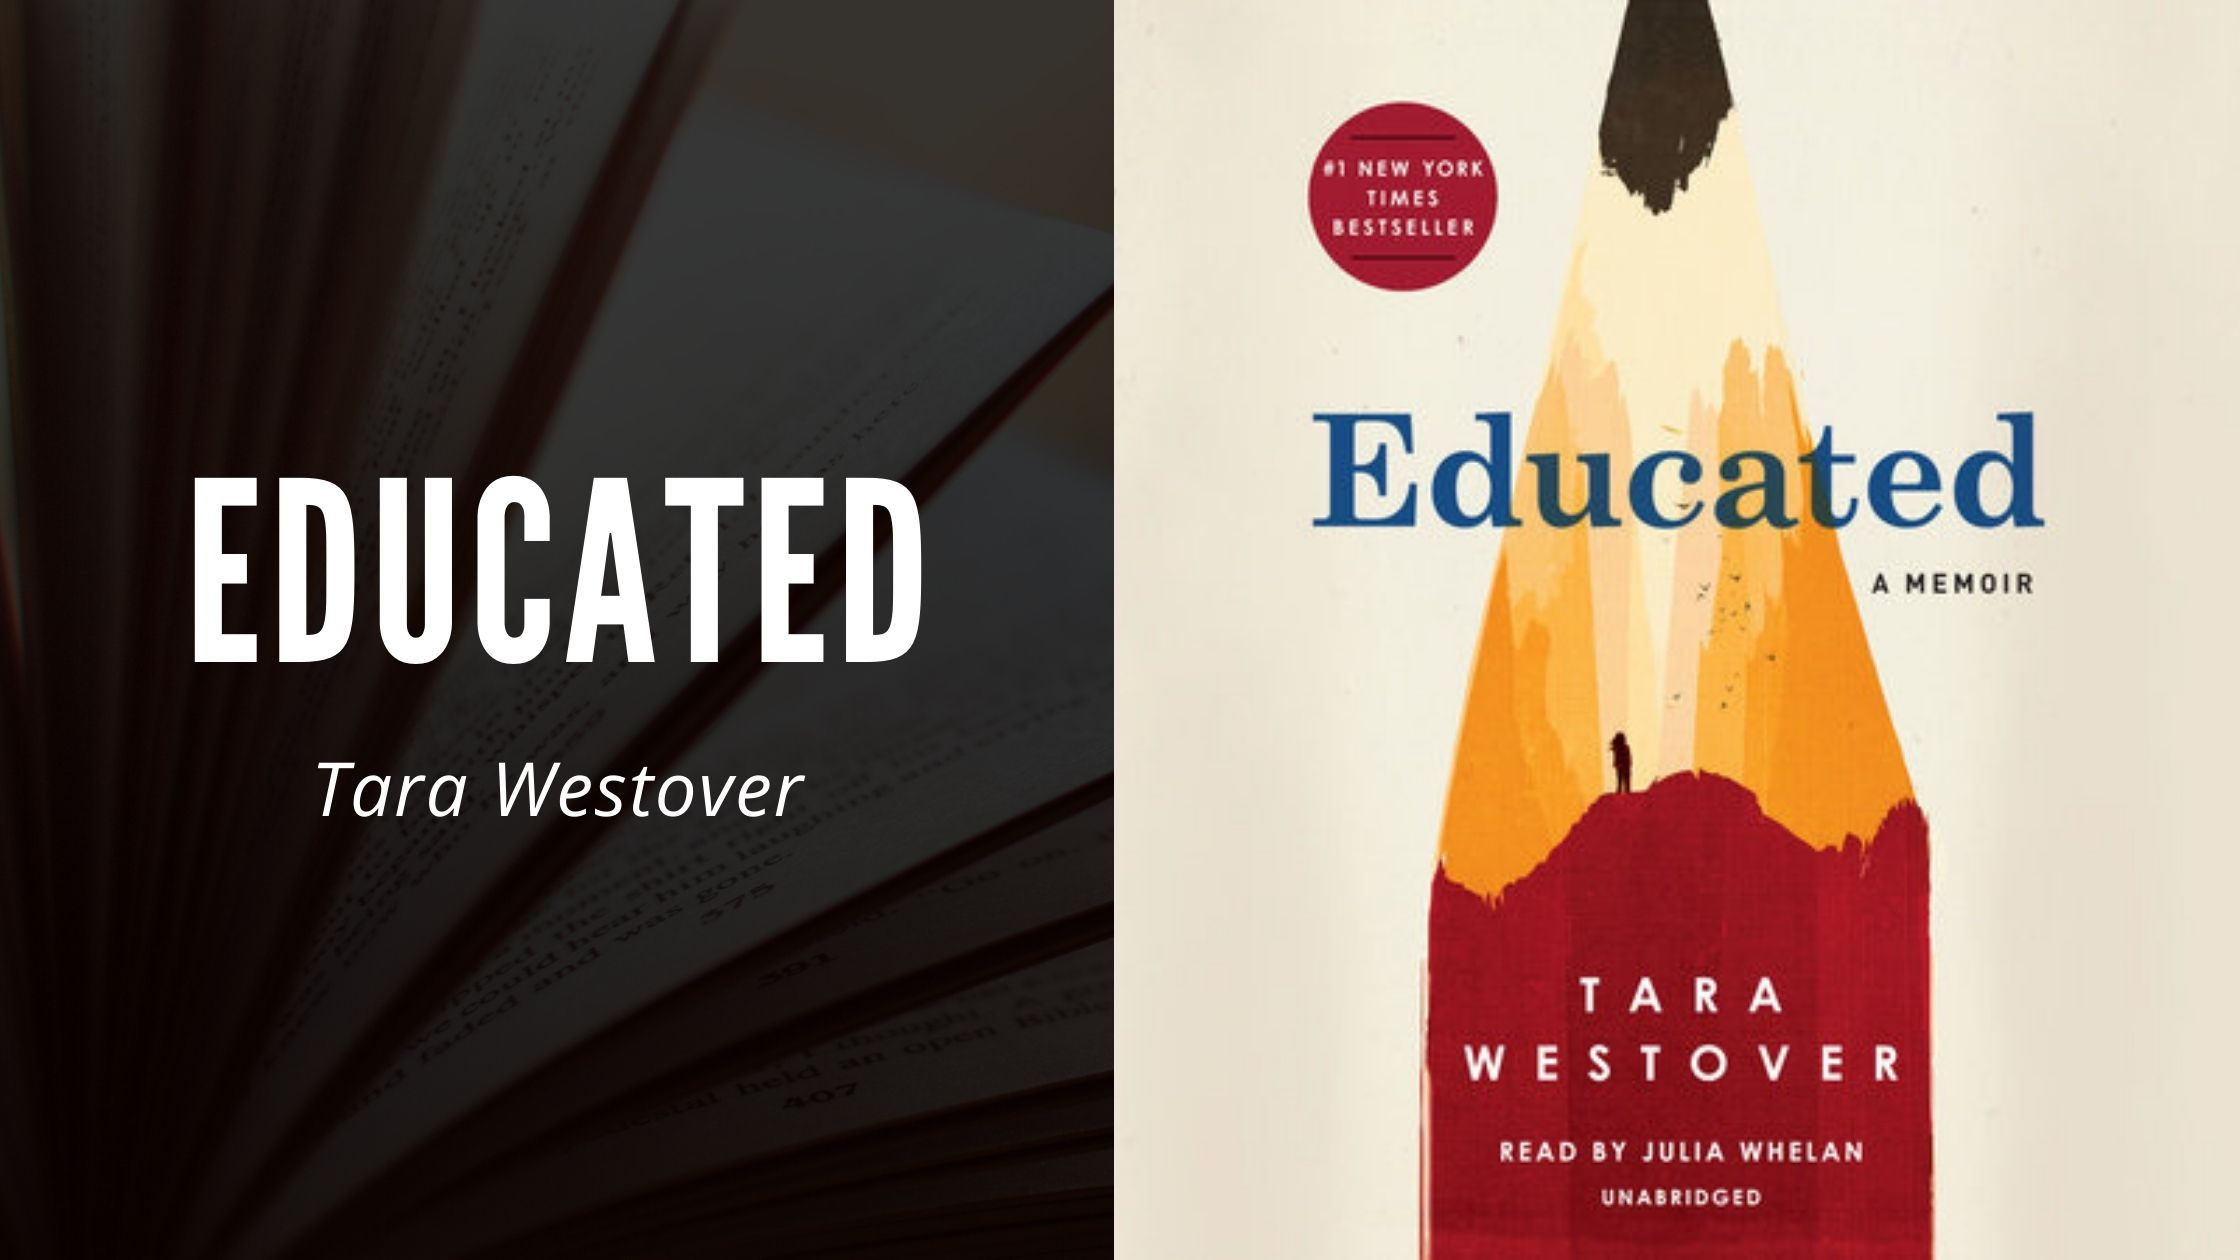 Tara Westover - Educated